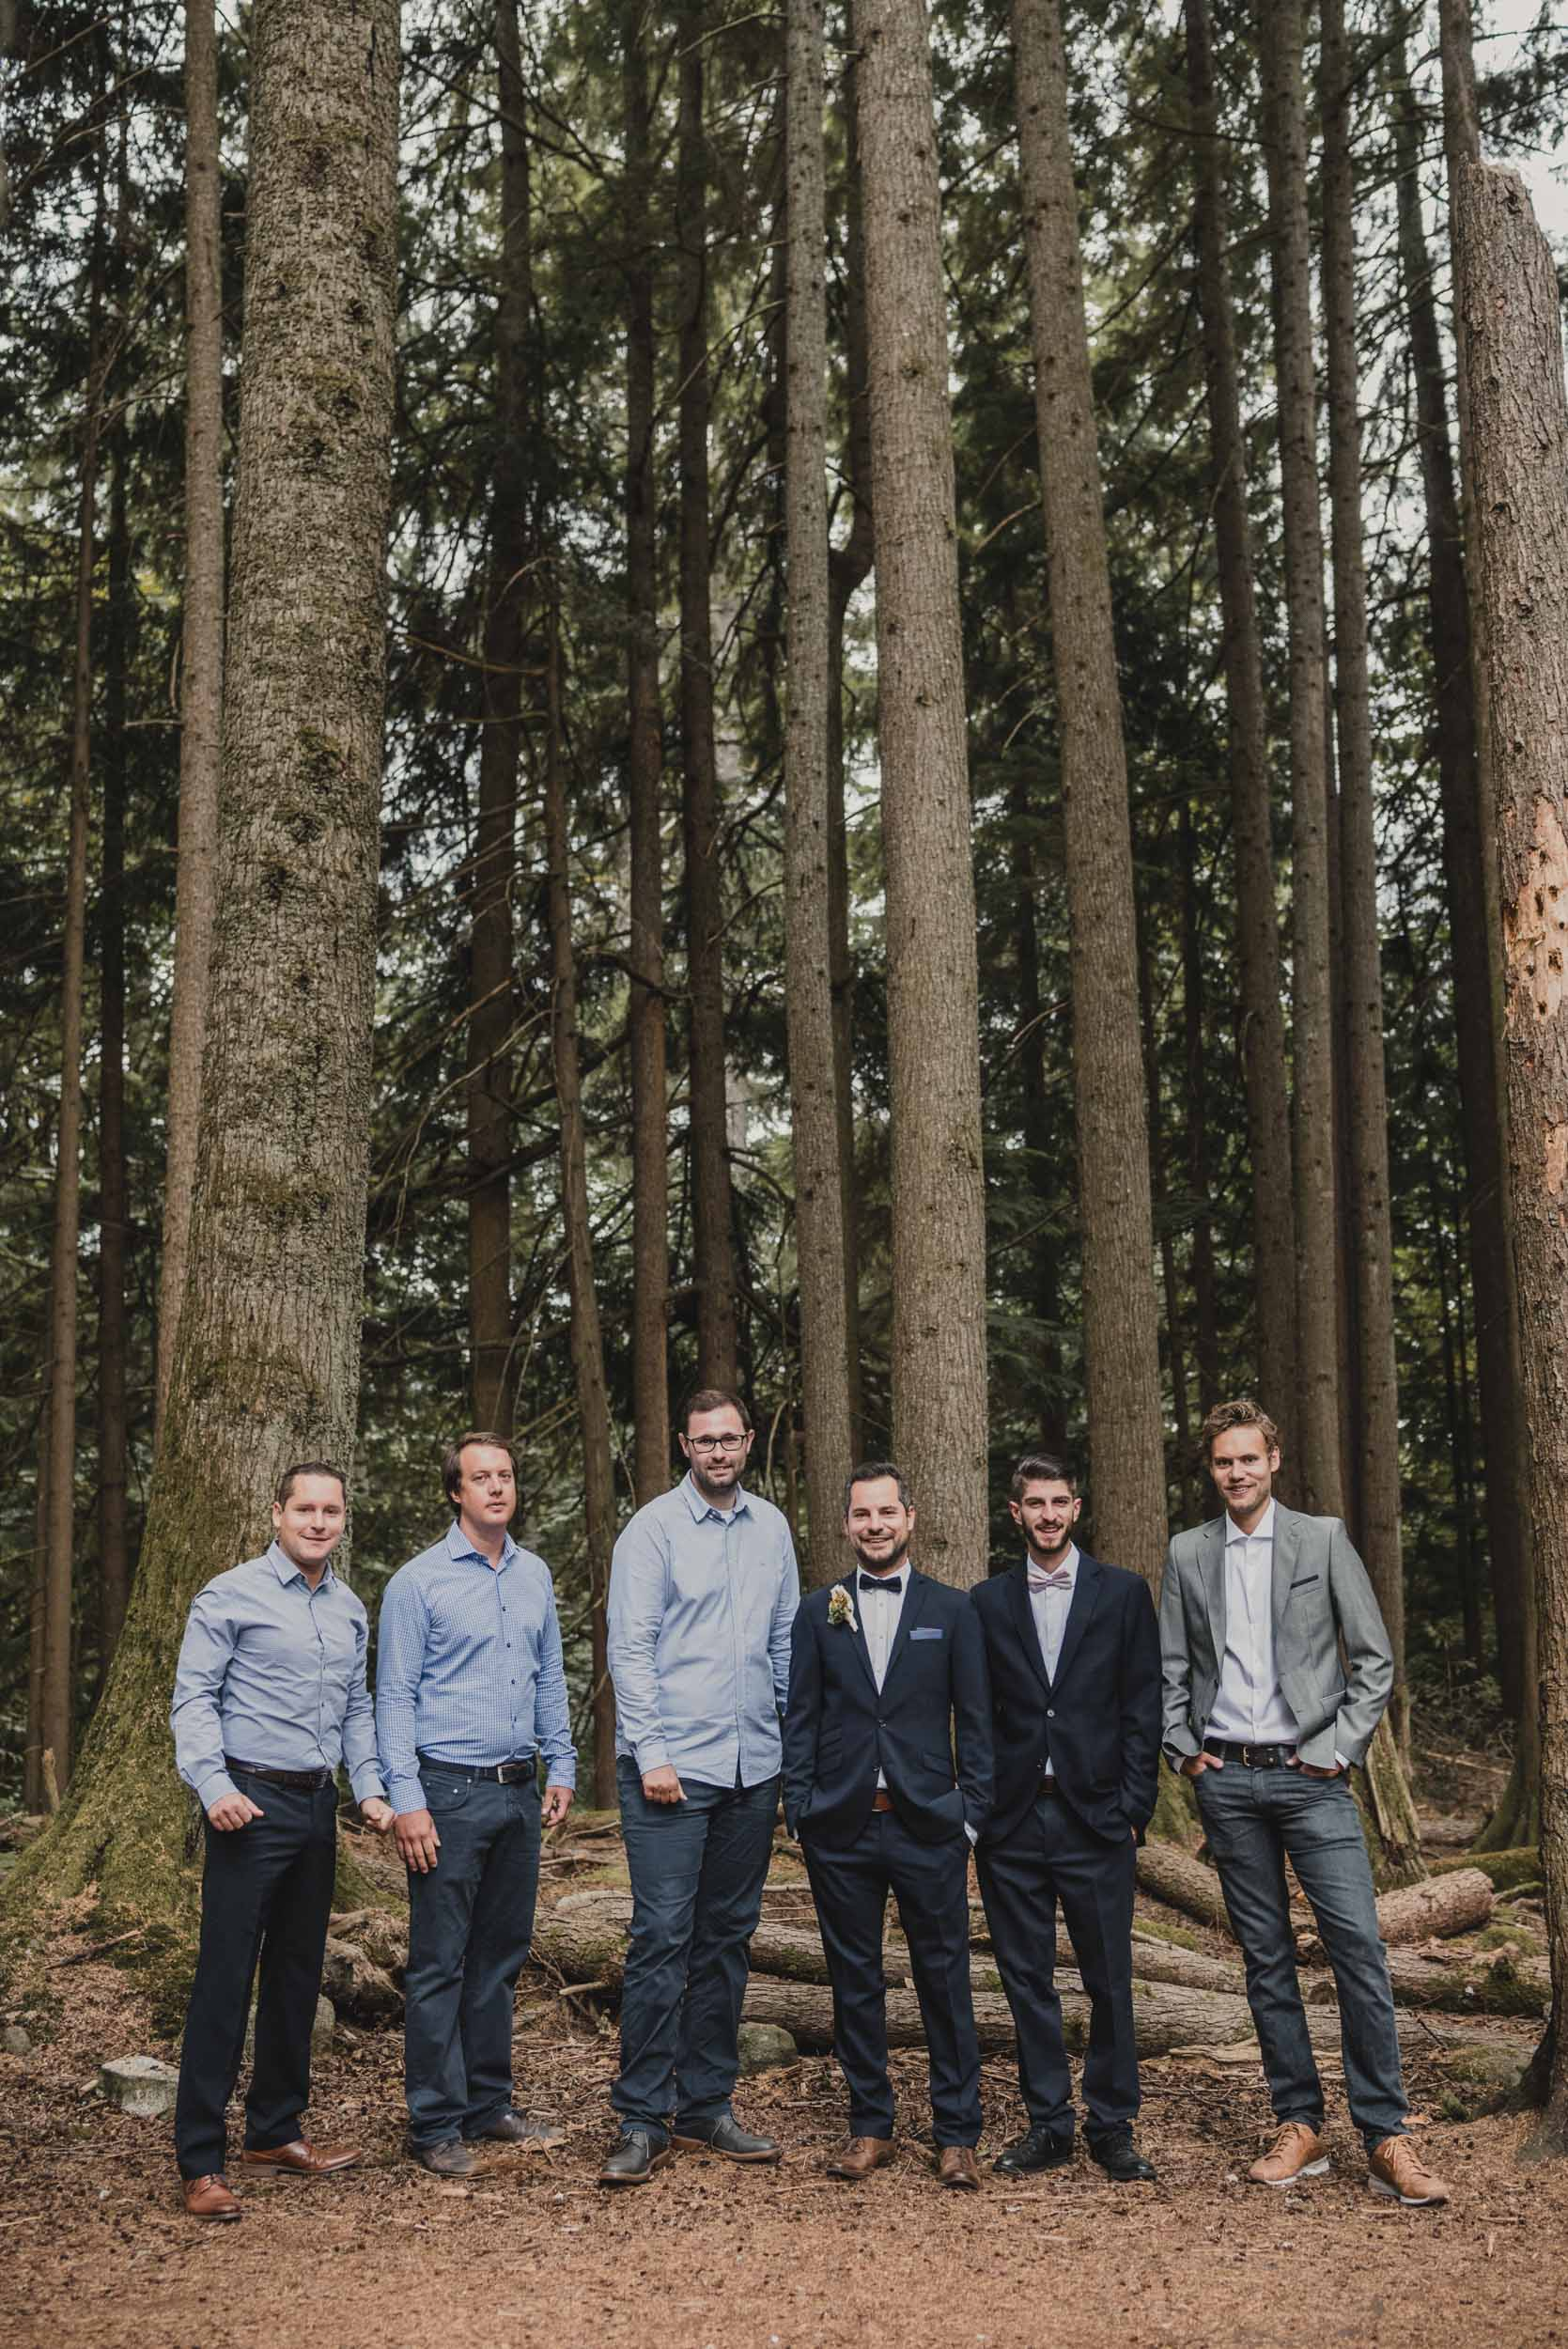 Groom and groomsmen group photo in forest